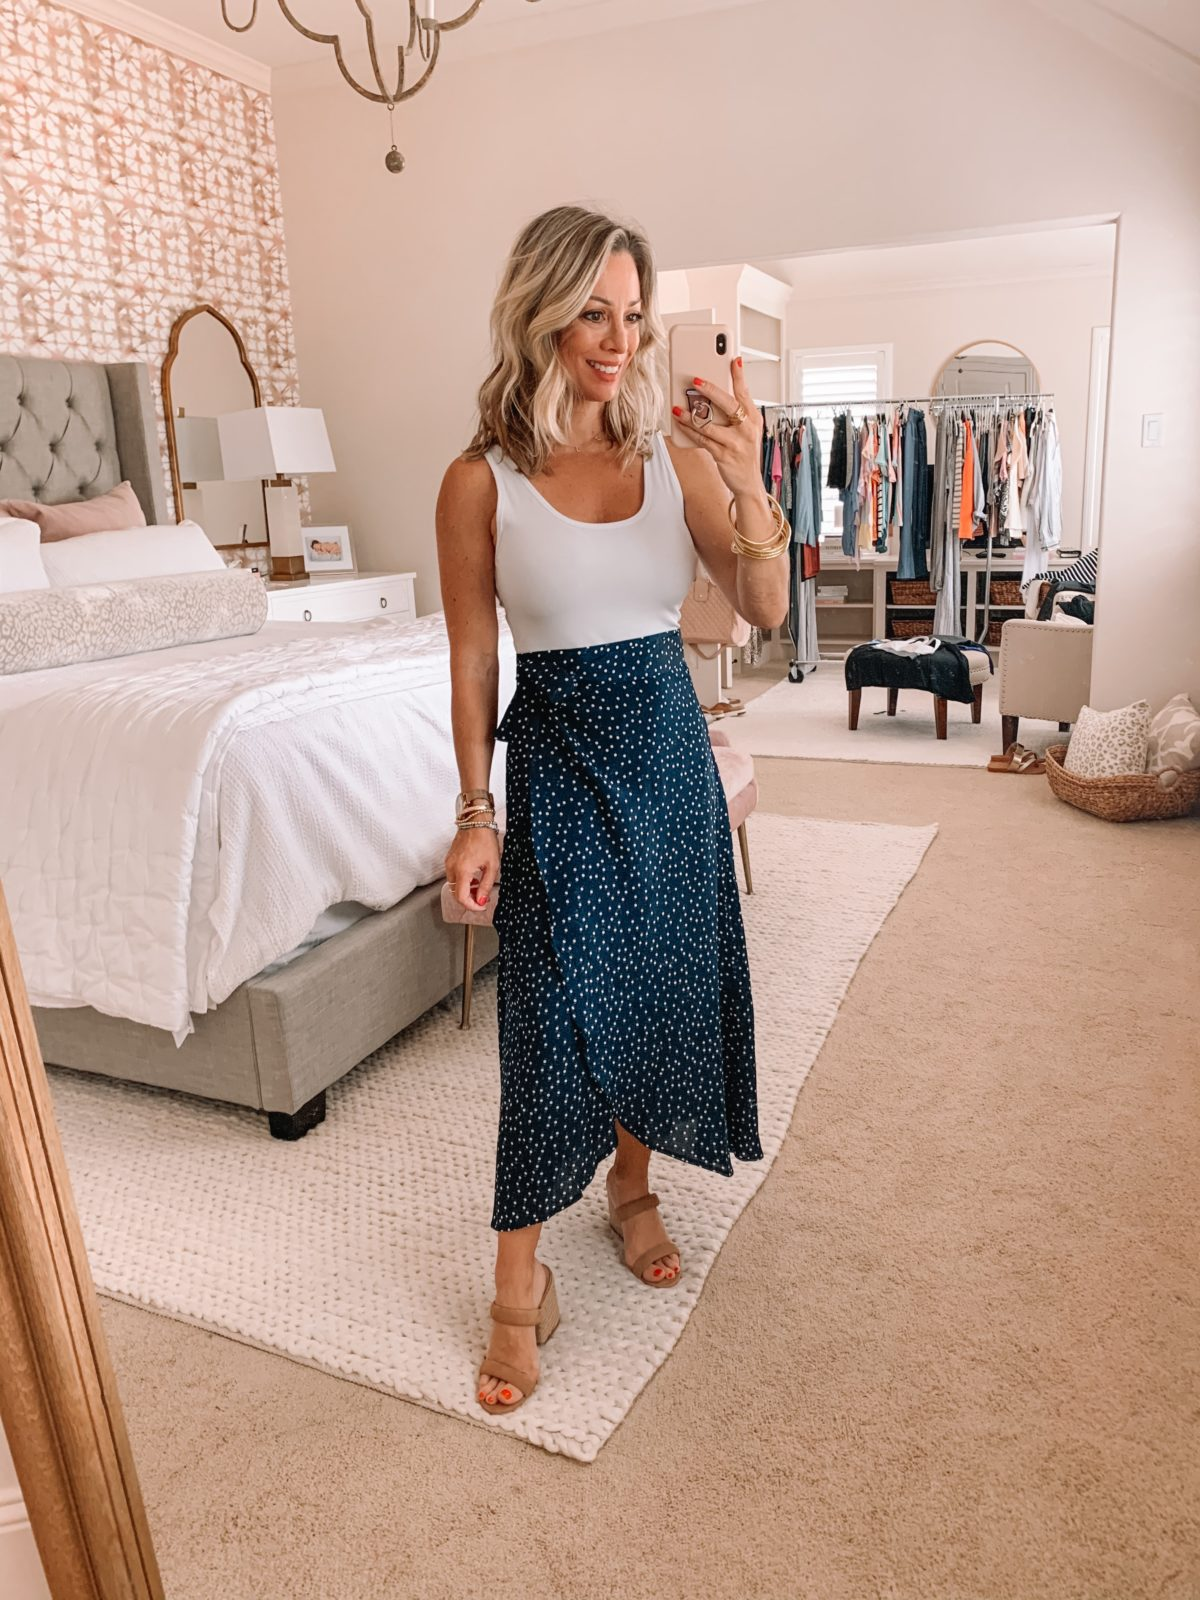 Amazon Fashion Finds, Bodysuit, Polka Dot Wrap Skirt, Sandals